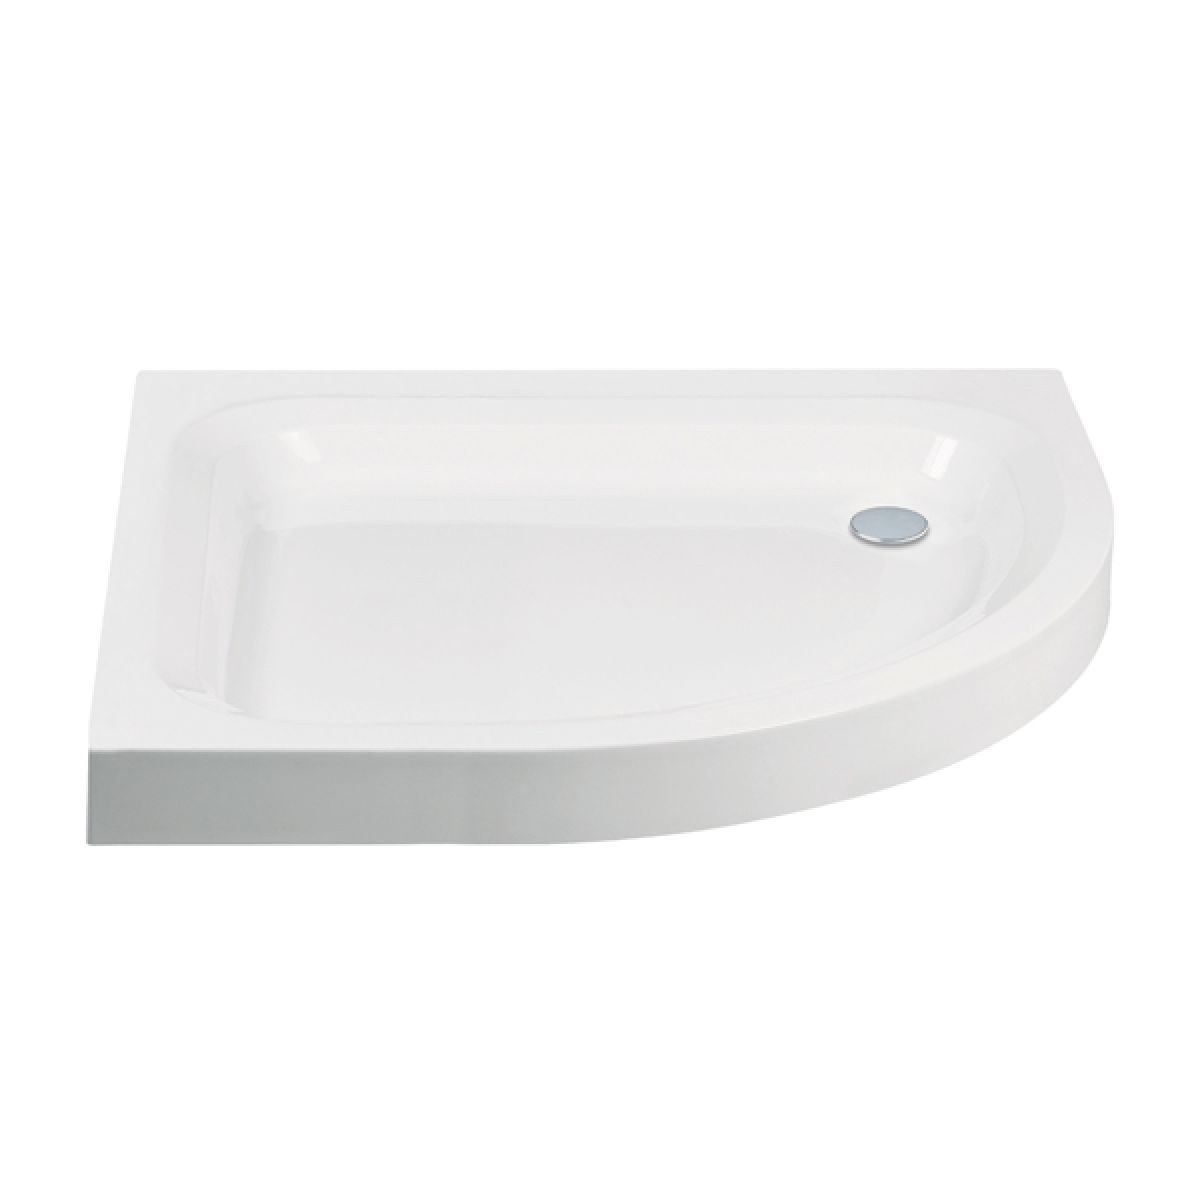 Frontline Standard Offset Quadrant Shower Tray 1000 x 800mm Right Handed